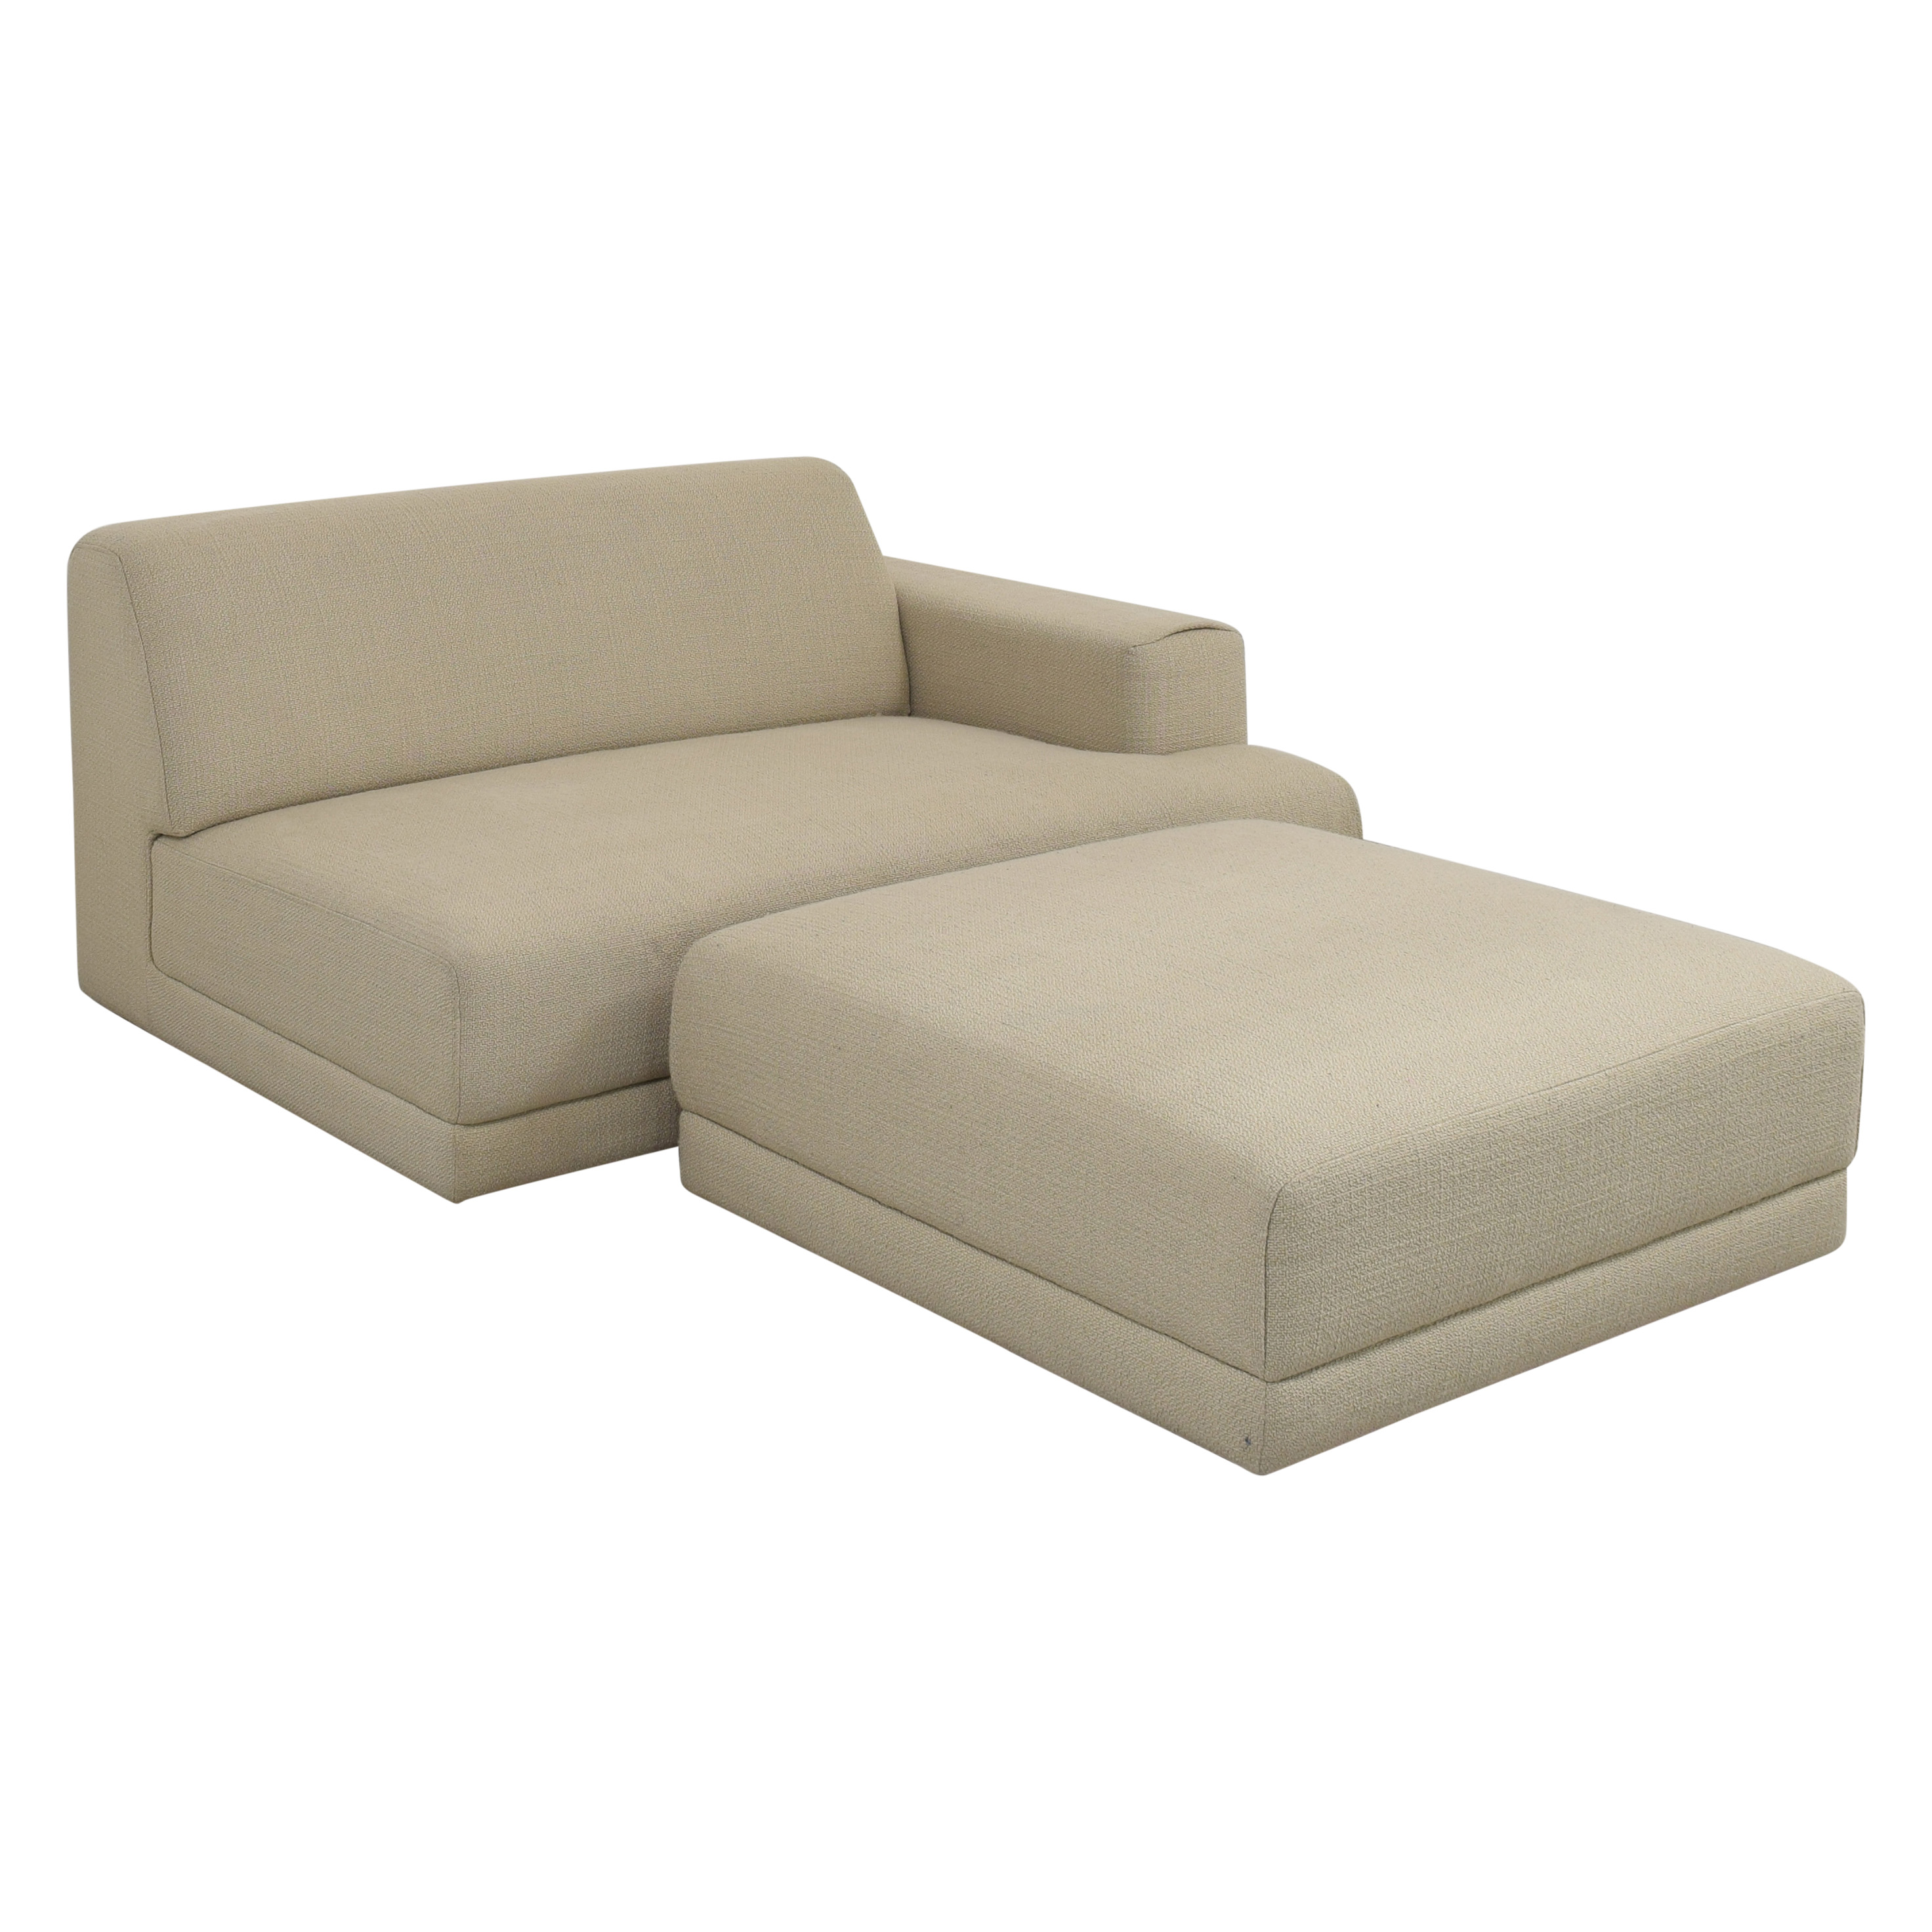 Crate & Barrel Crate & Barrel Right-Arm Chair and Ottoman for sale